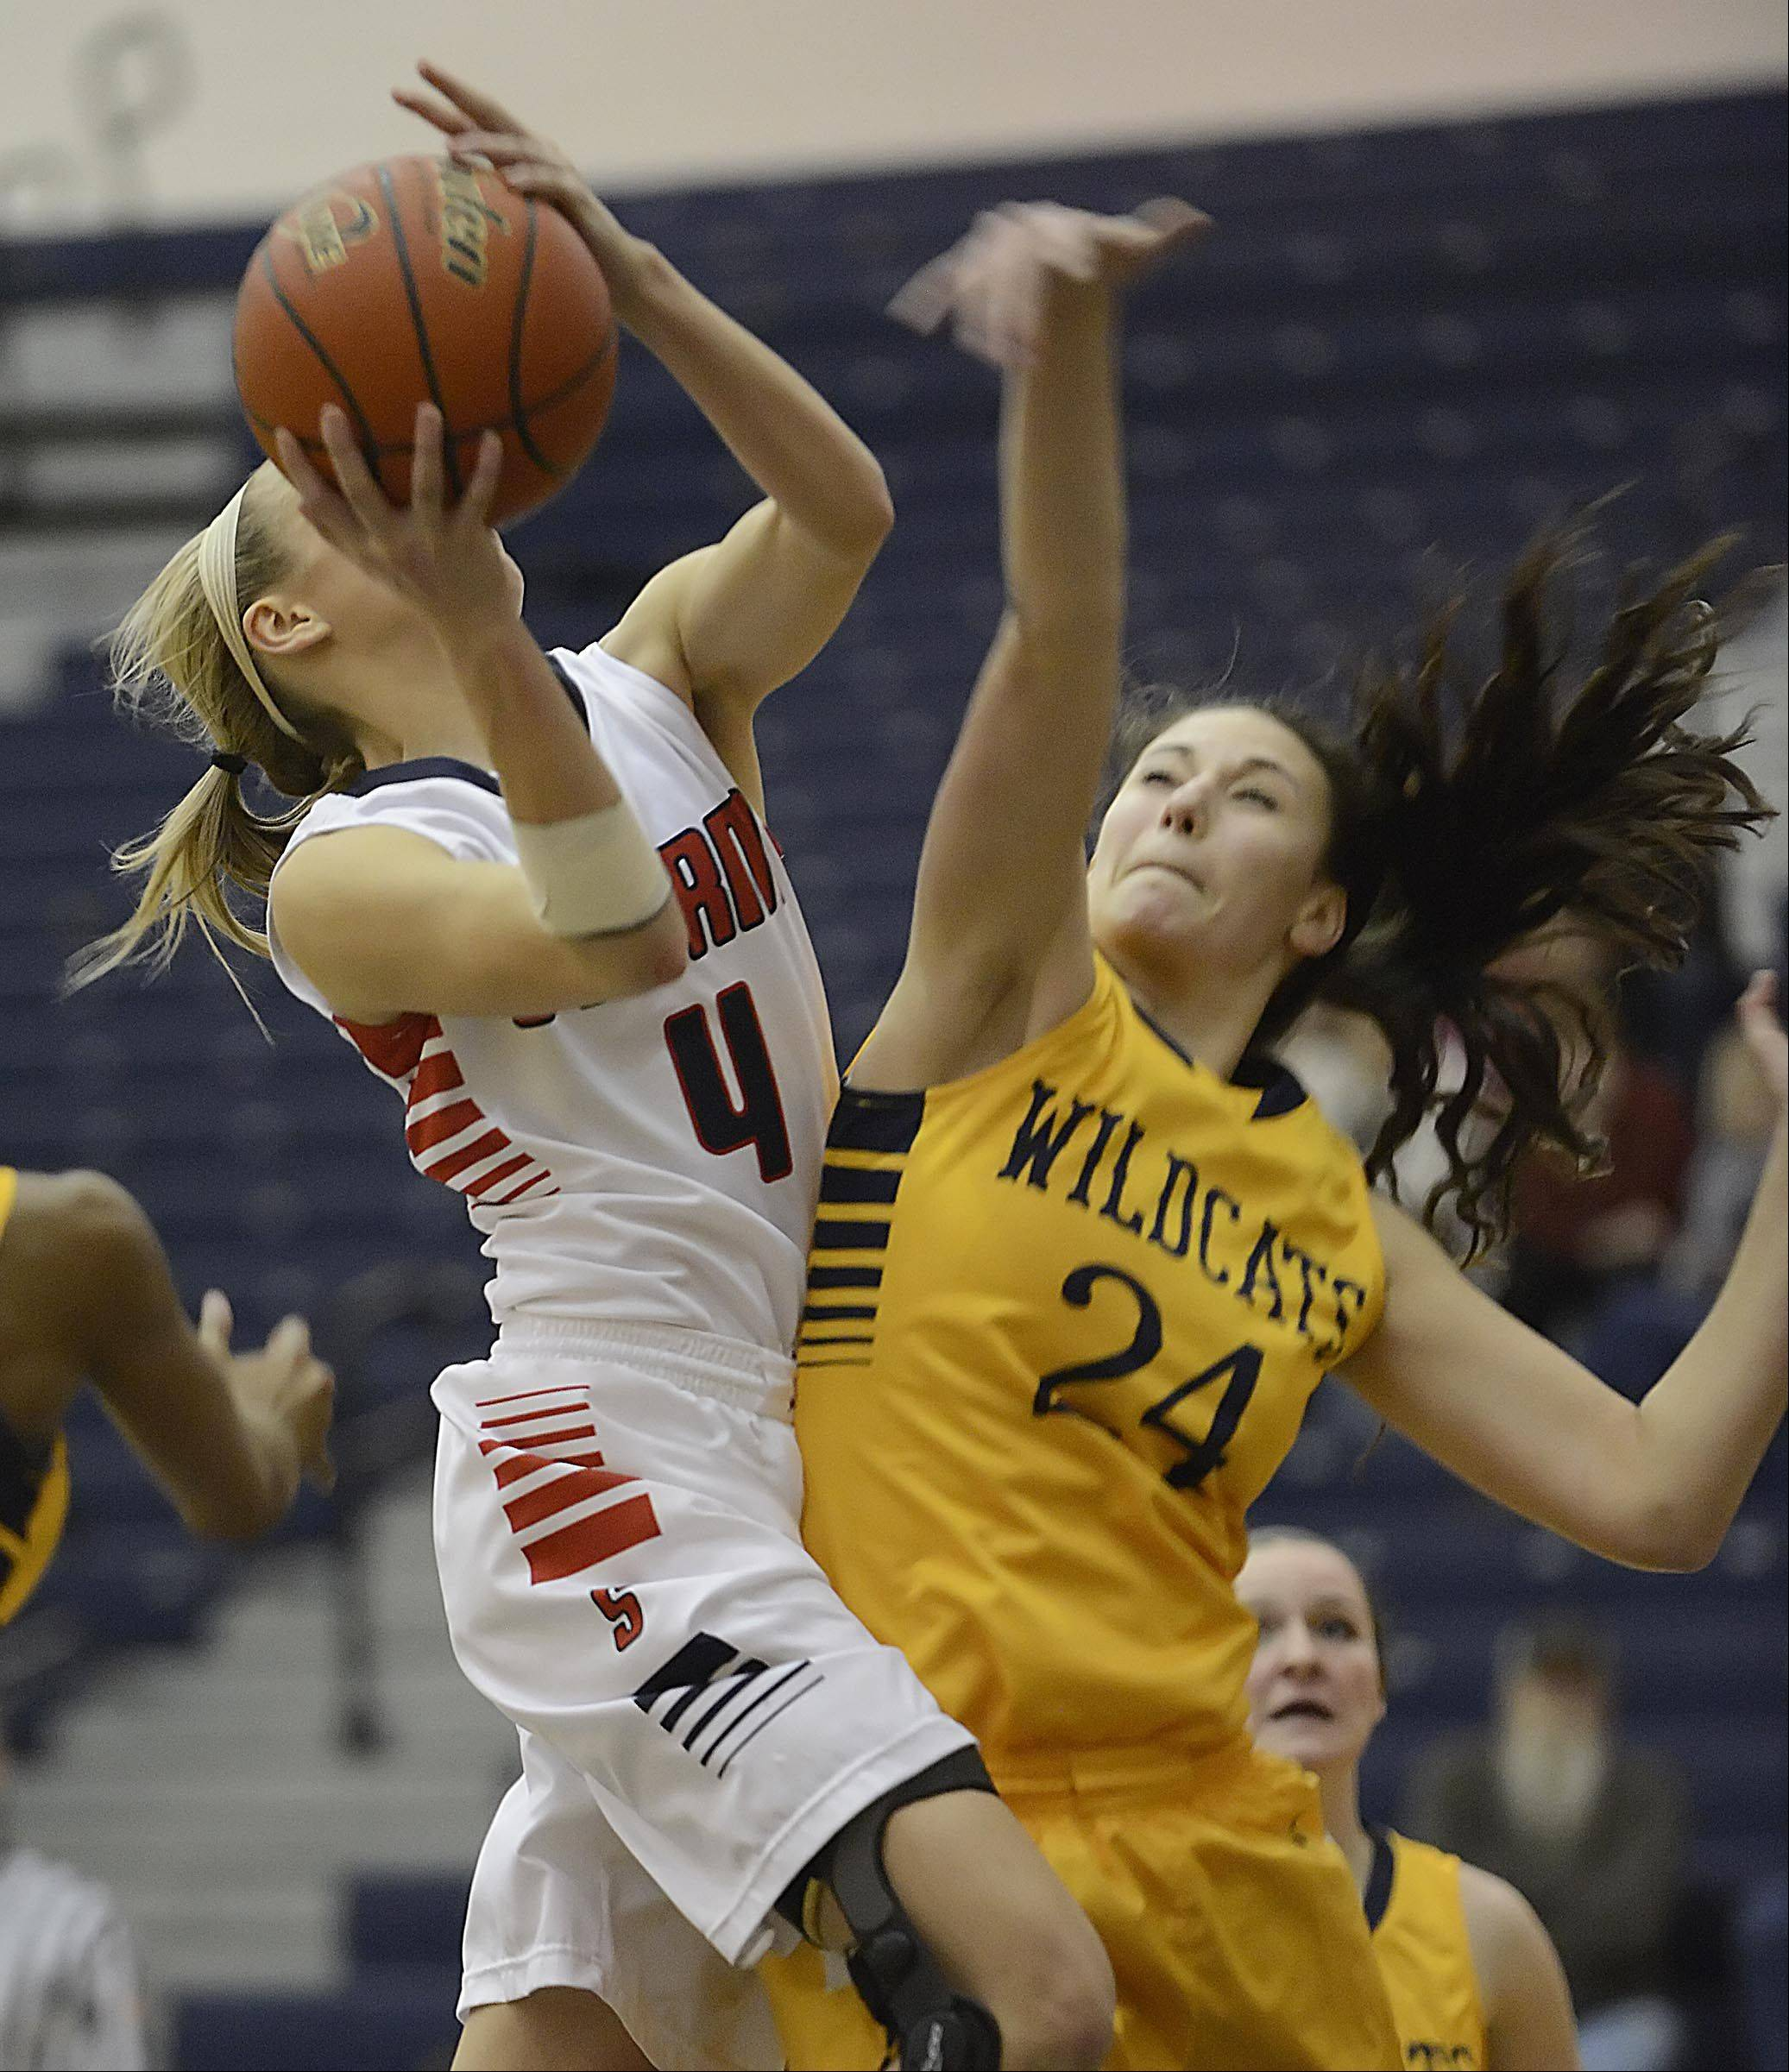 South Elgin's Savanah Uveges is fouled by Neuqua Valley's Bryce Menendez Monday in South Elgin.